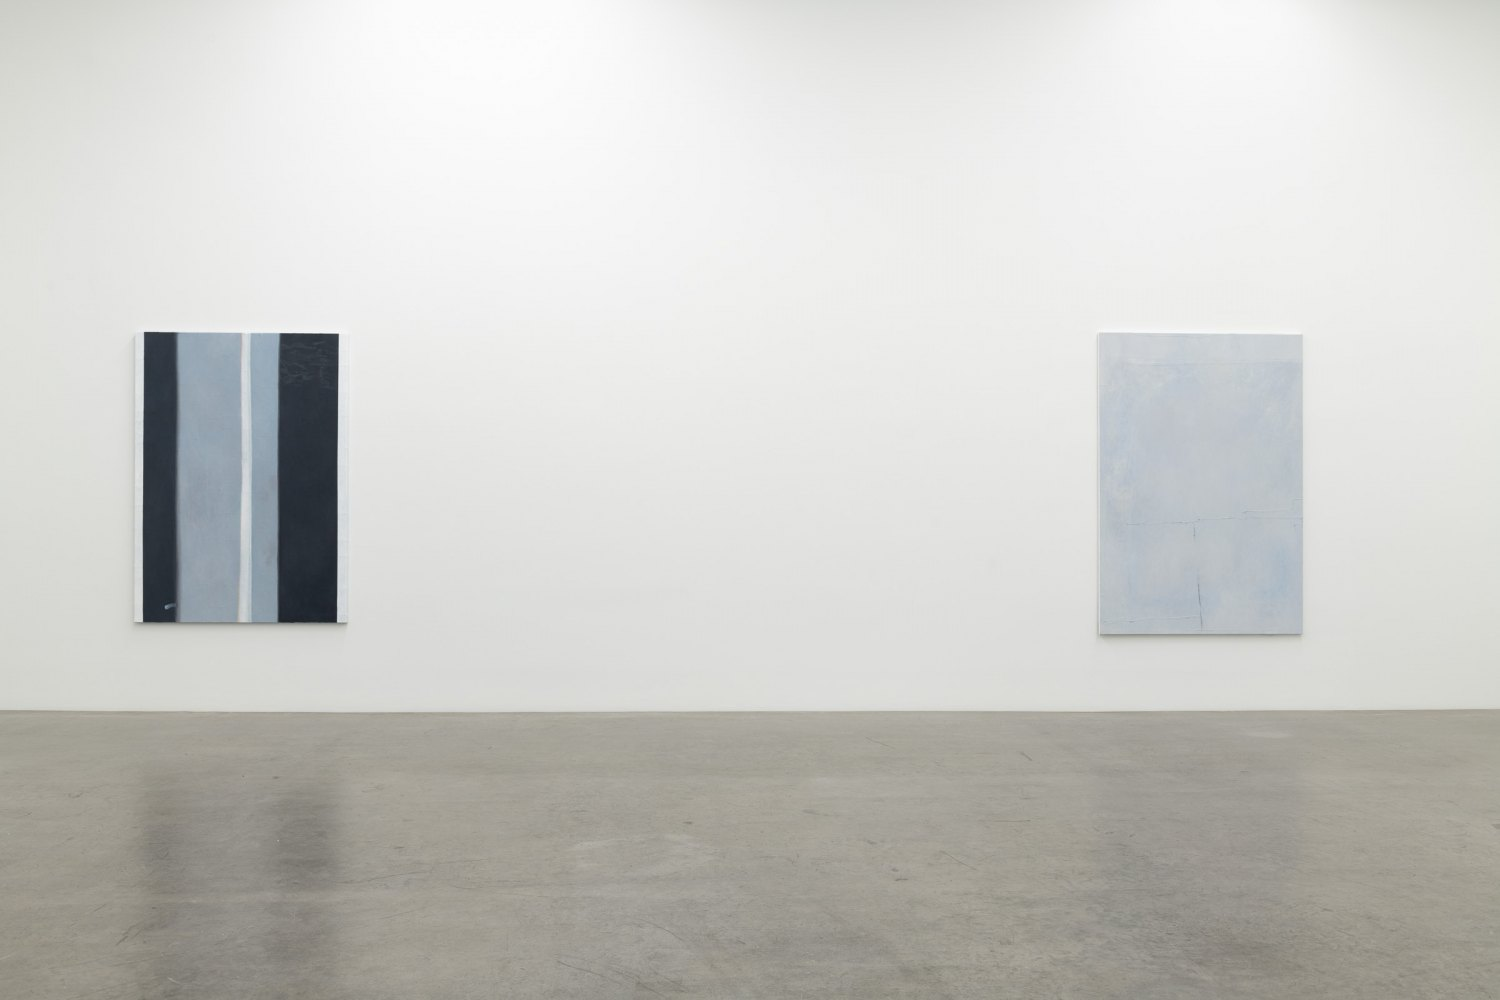 Installation view, Sergej Jensen, Abstract Paintings, Galerie Neu, Berlin 2020